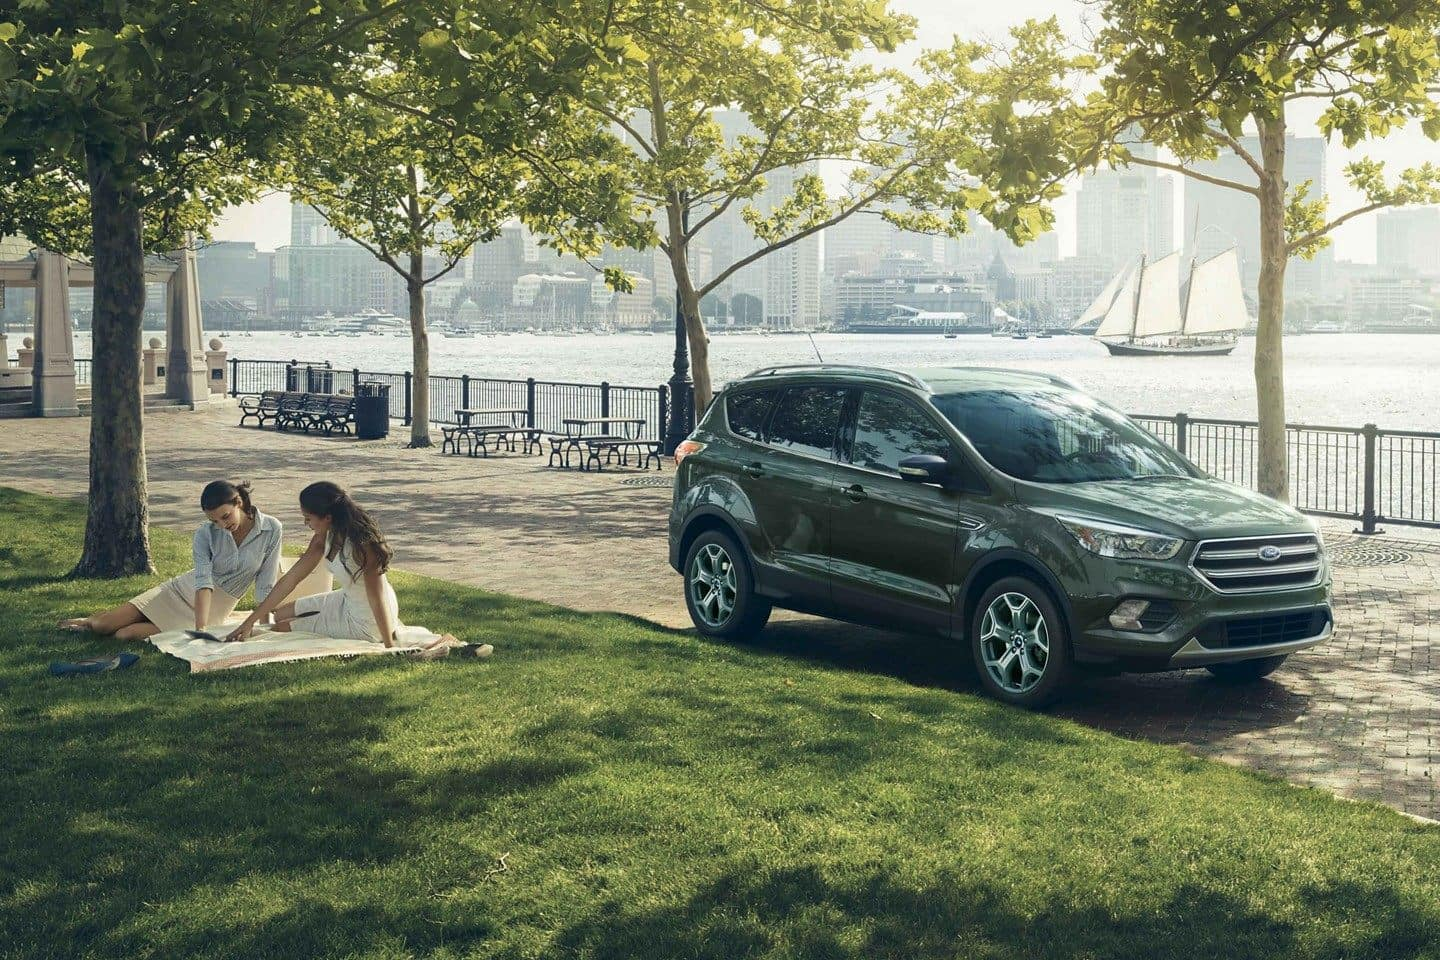 2019 Ford Escape Parked